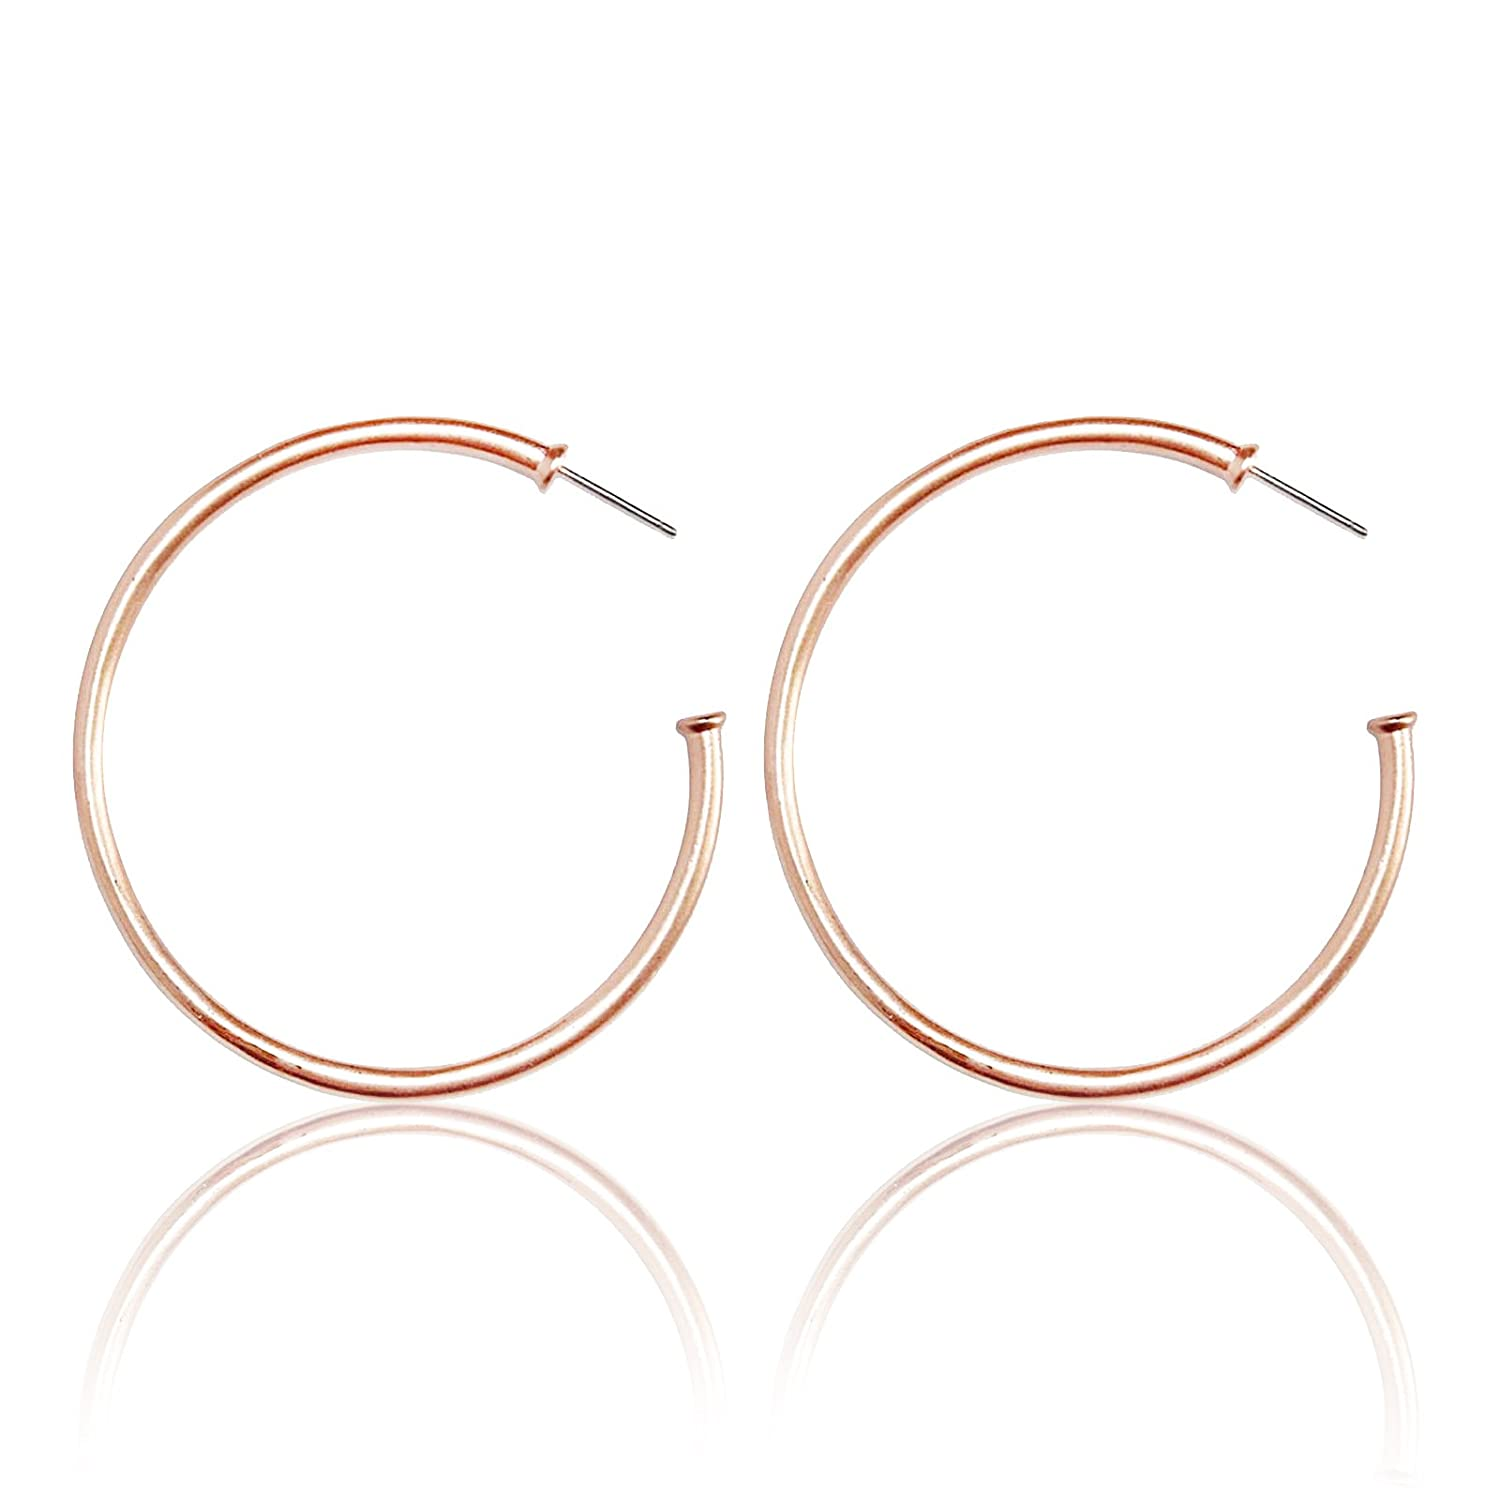 Pomina Tubular Open Round Classic Hoop Earrings by Boenmo